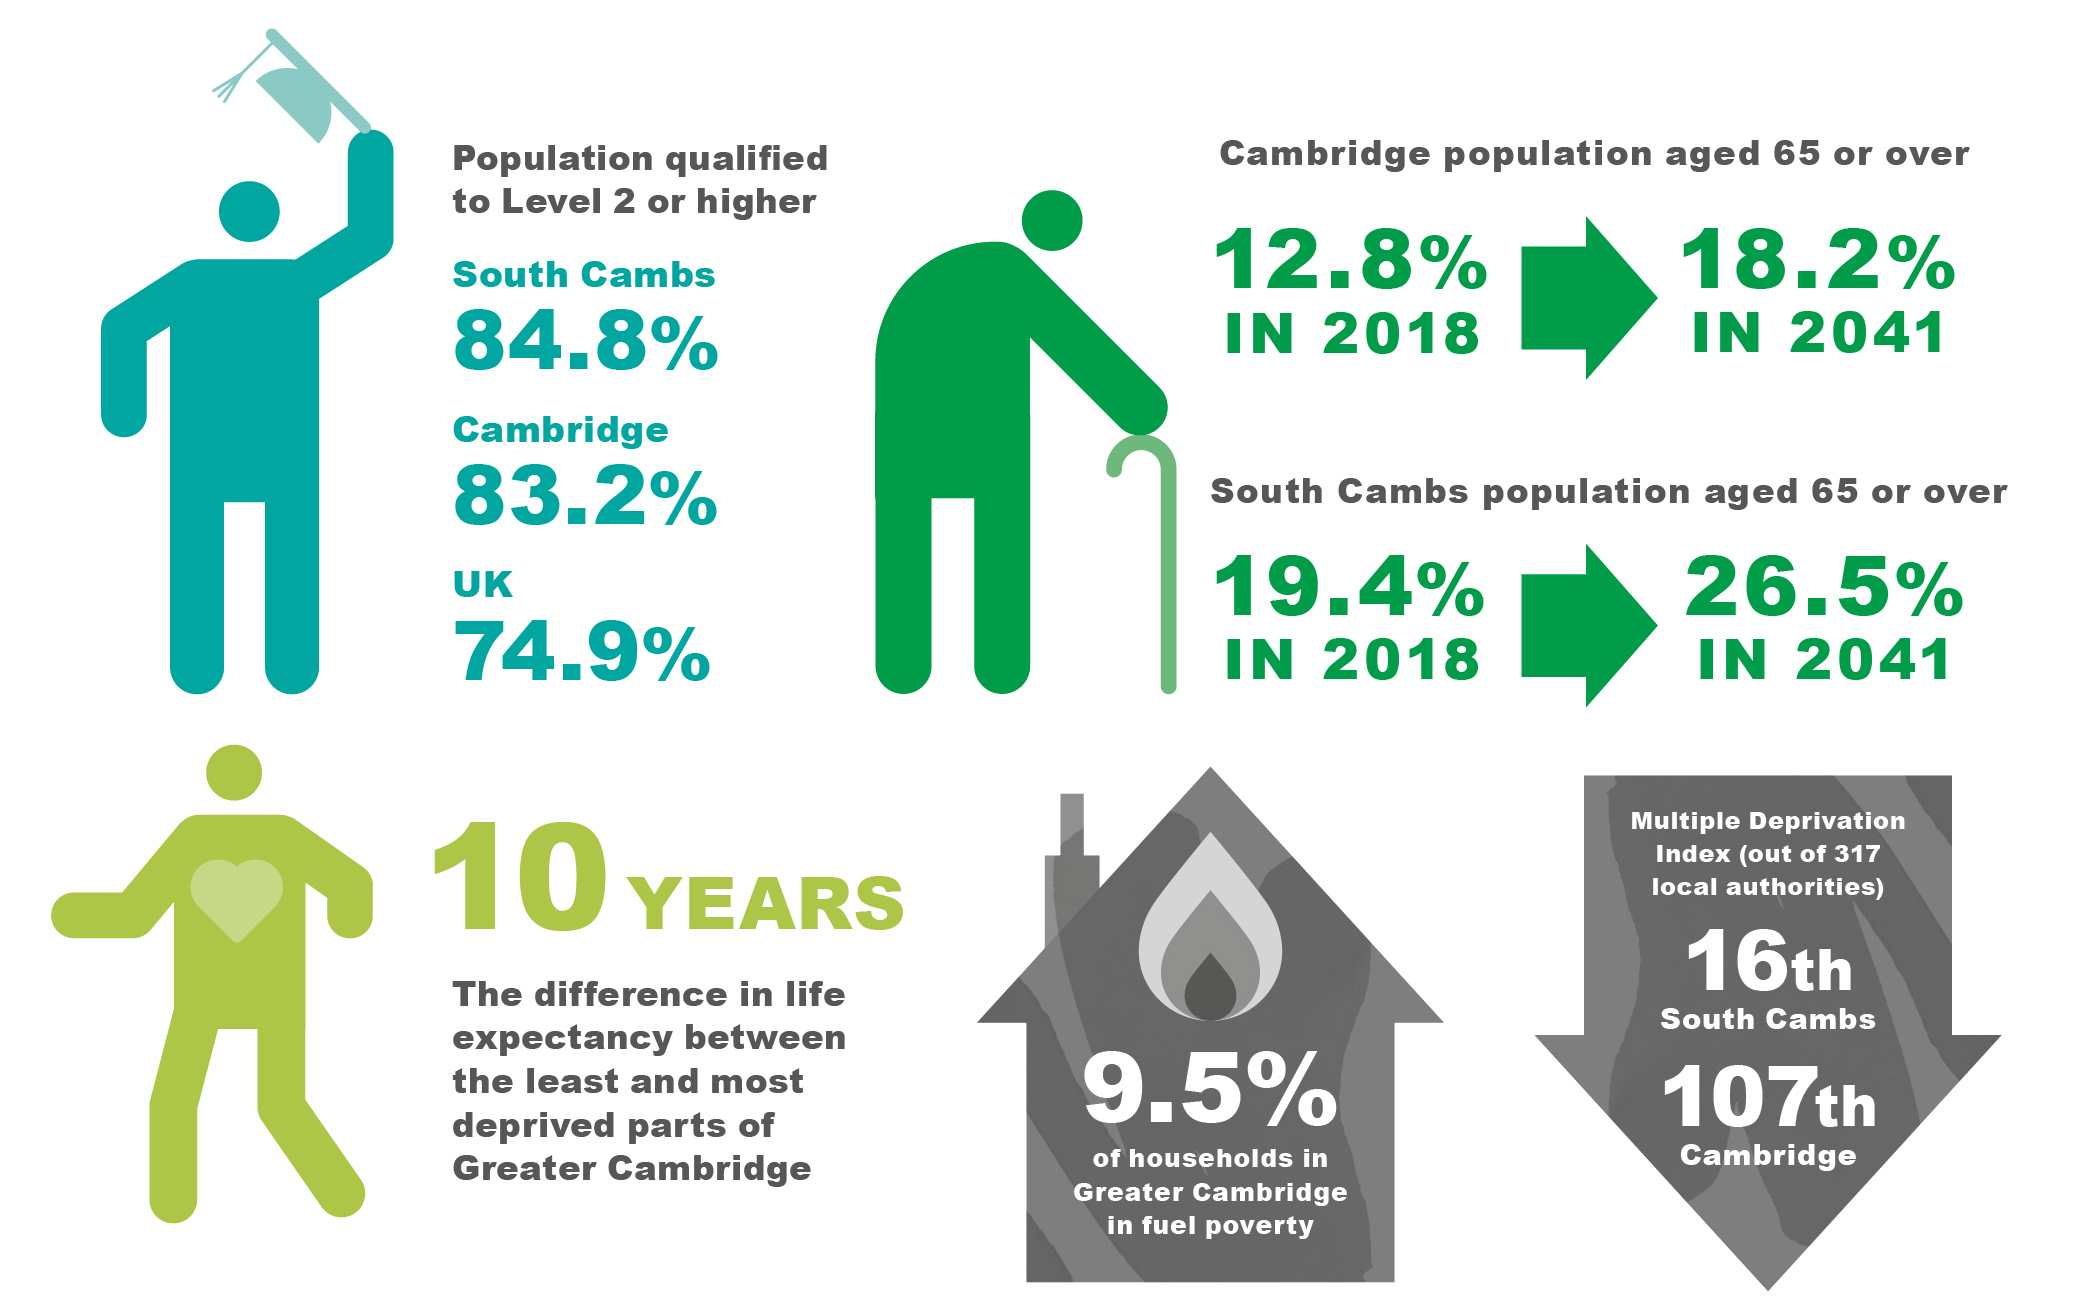 Infographic showing that the population aged 19-59/64 qualified to at least level 2 or higher is 83.2% in Cambridge and 84.8% in South Cambs, compared to 74.9% nationally); South Cambs is 16th and Cambridge is 1107th in the Multiple Deprivation Index (out of 317 local authorities); 9.5% of households in Greater Cambridge in fuel poverty; % population aged 65 and over in Cambridge in 2018 is 13% rising in 2041 to 18%, in South Cambs in 2018 is 19% rising in 2041 to 26%; there is a 10 year difference in life expectancy between the least and most deprived areas of Greater Cambridge.